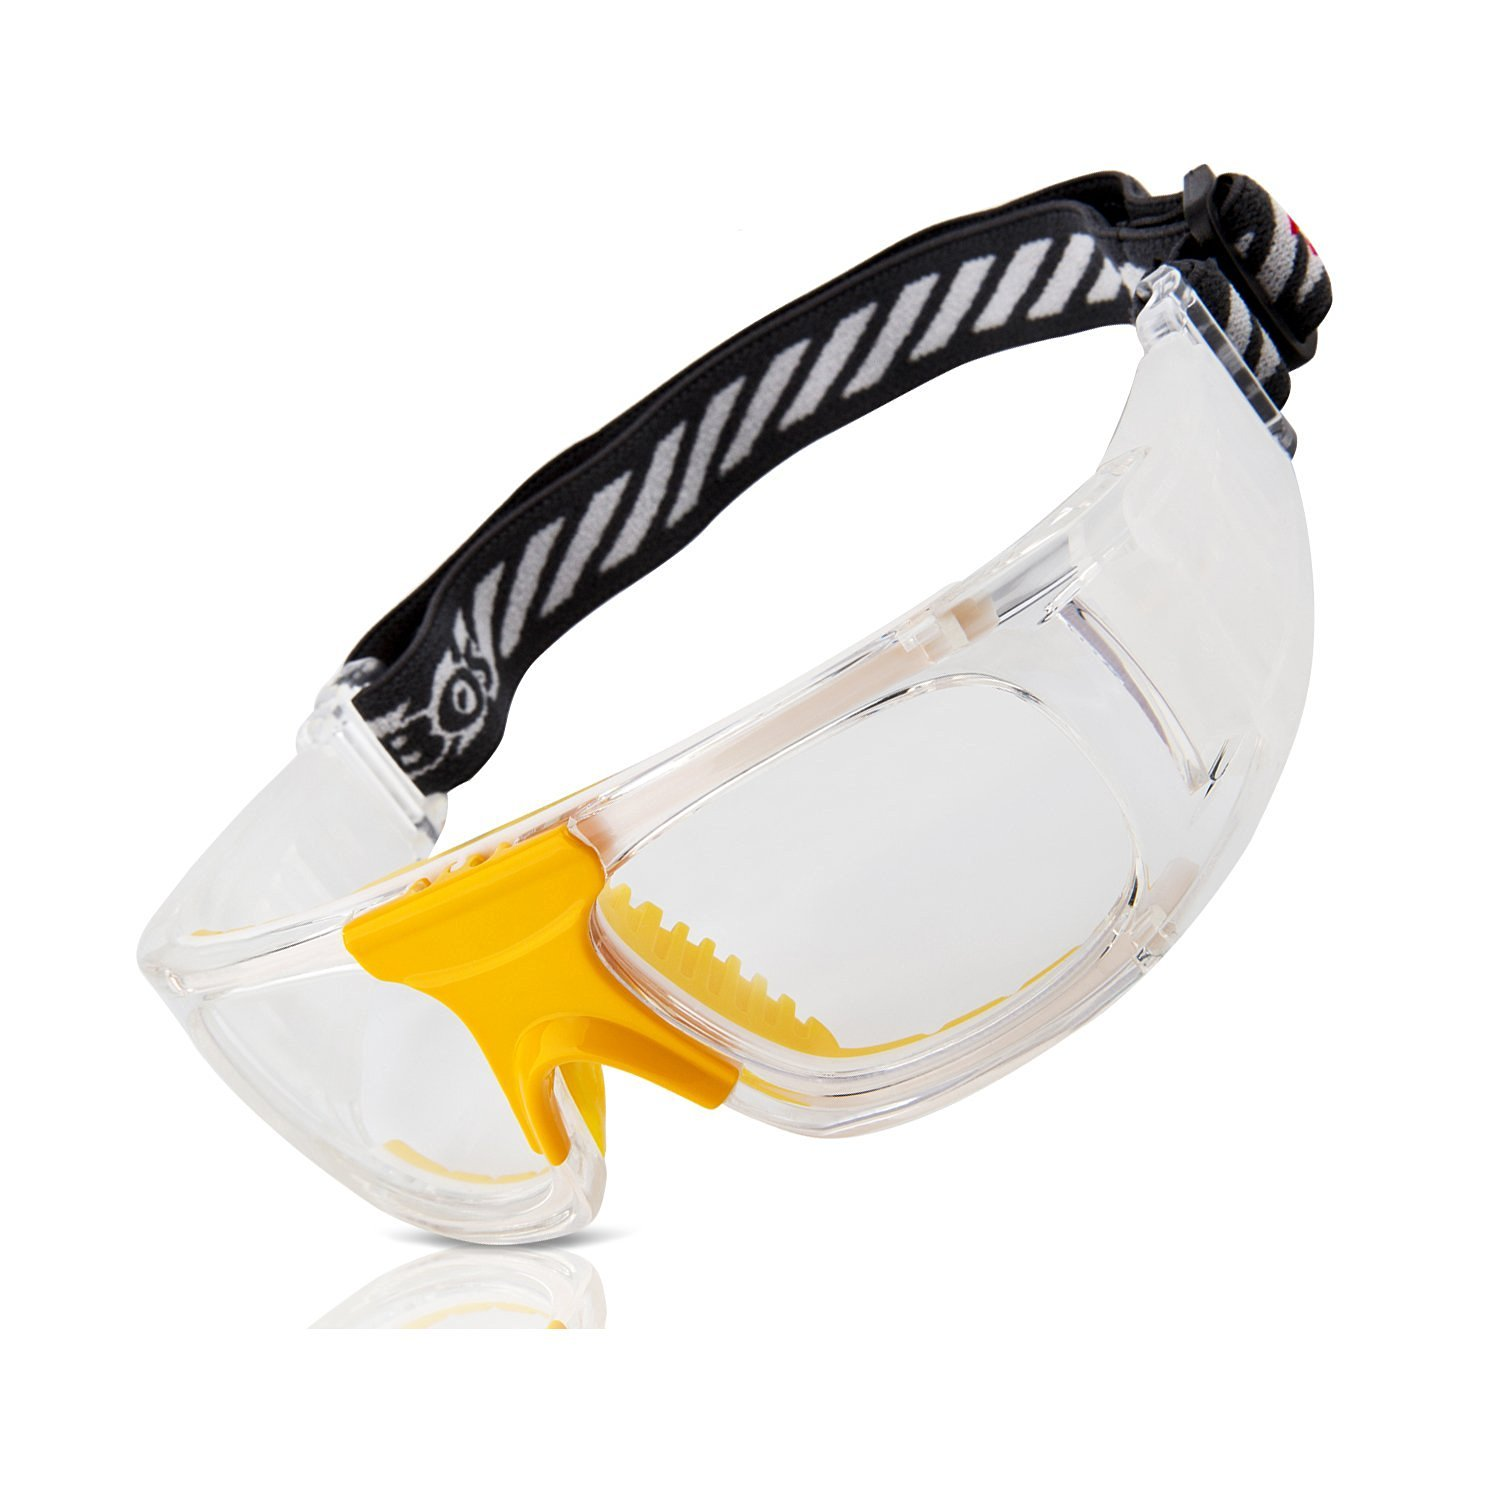 4d9948752a Get Quotations · RIVBOS® Sports Goggles Safety Protective Glasses with Strap  and Portable Case for Basketball Football Hockey